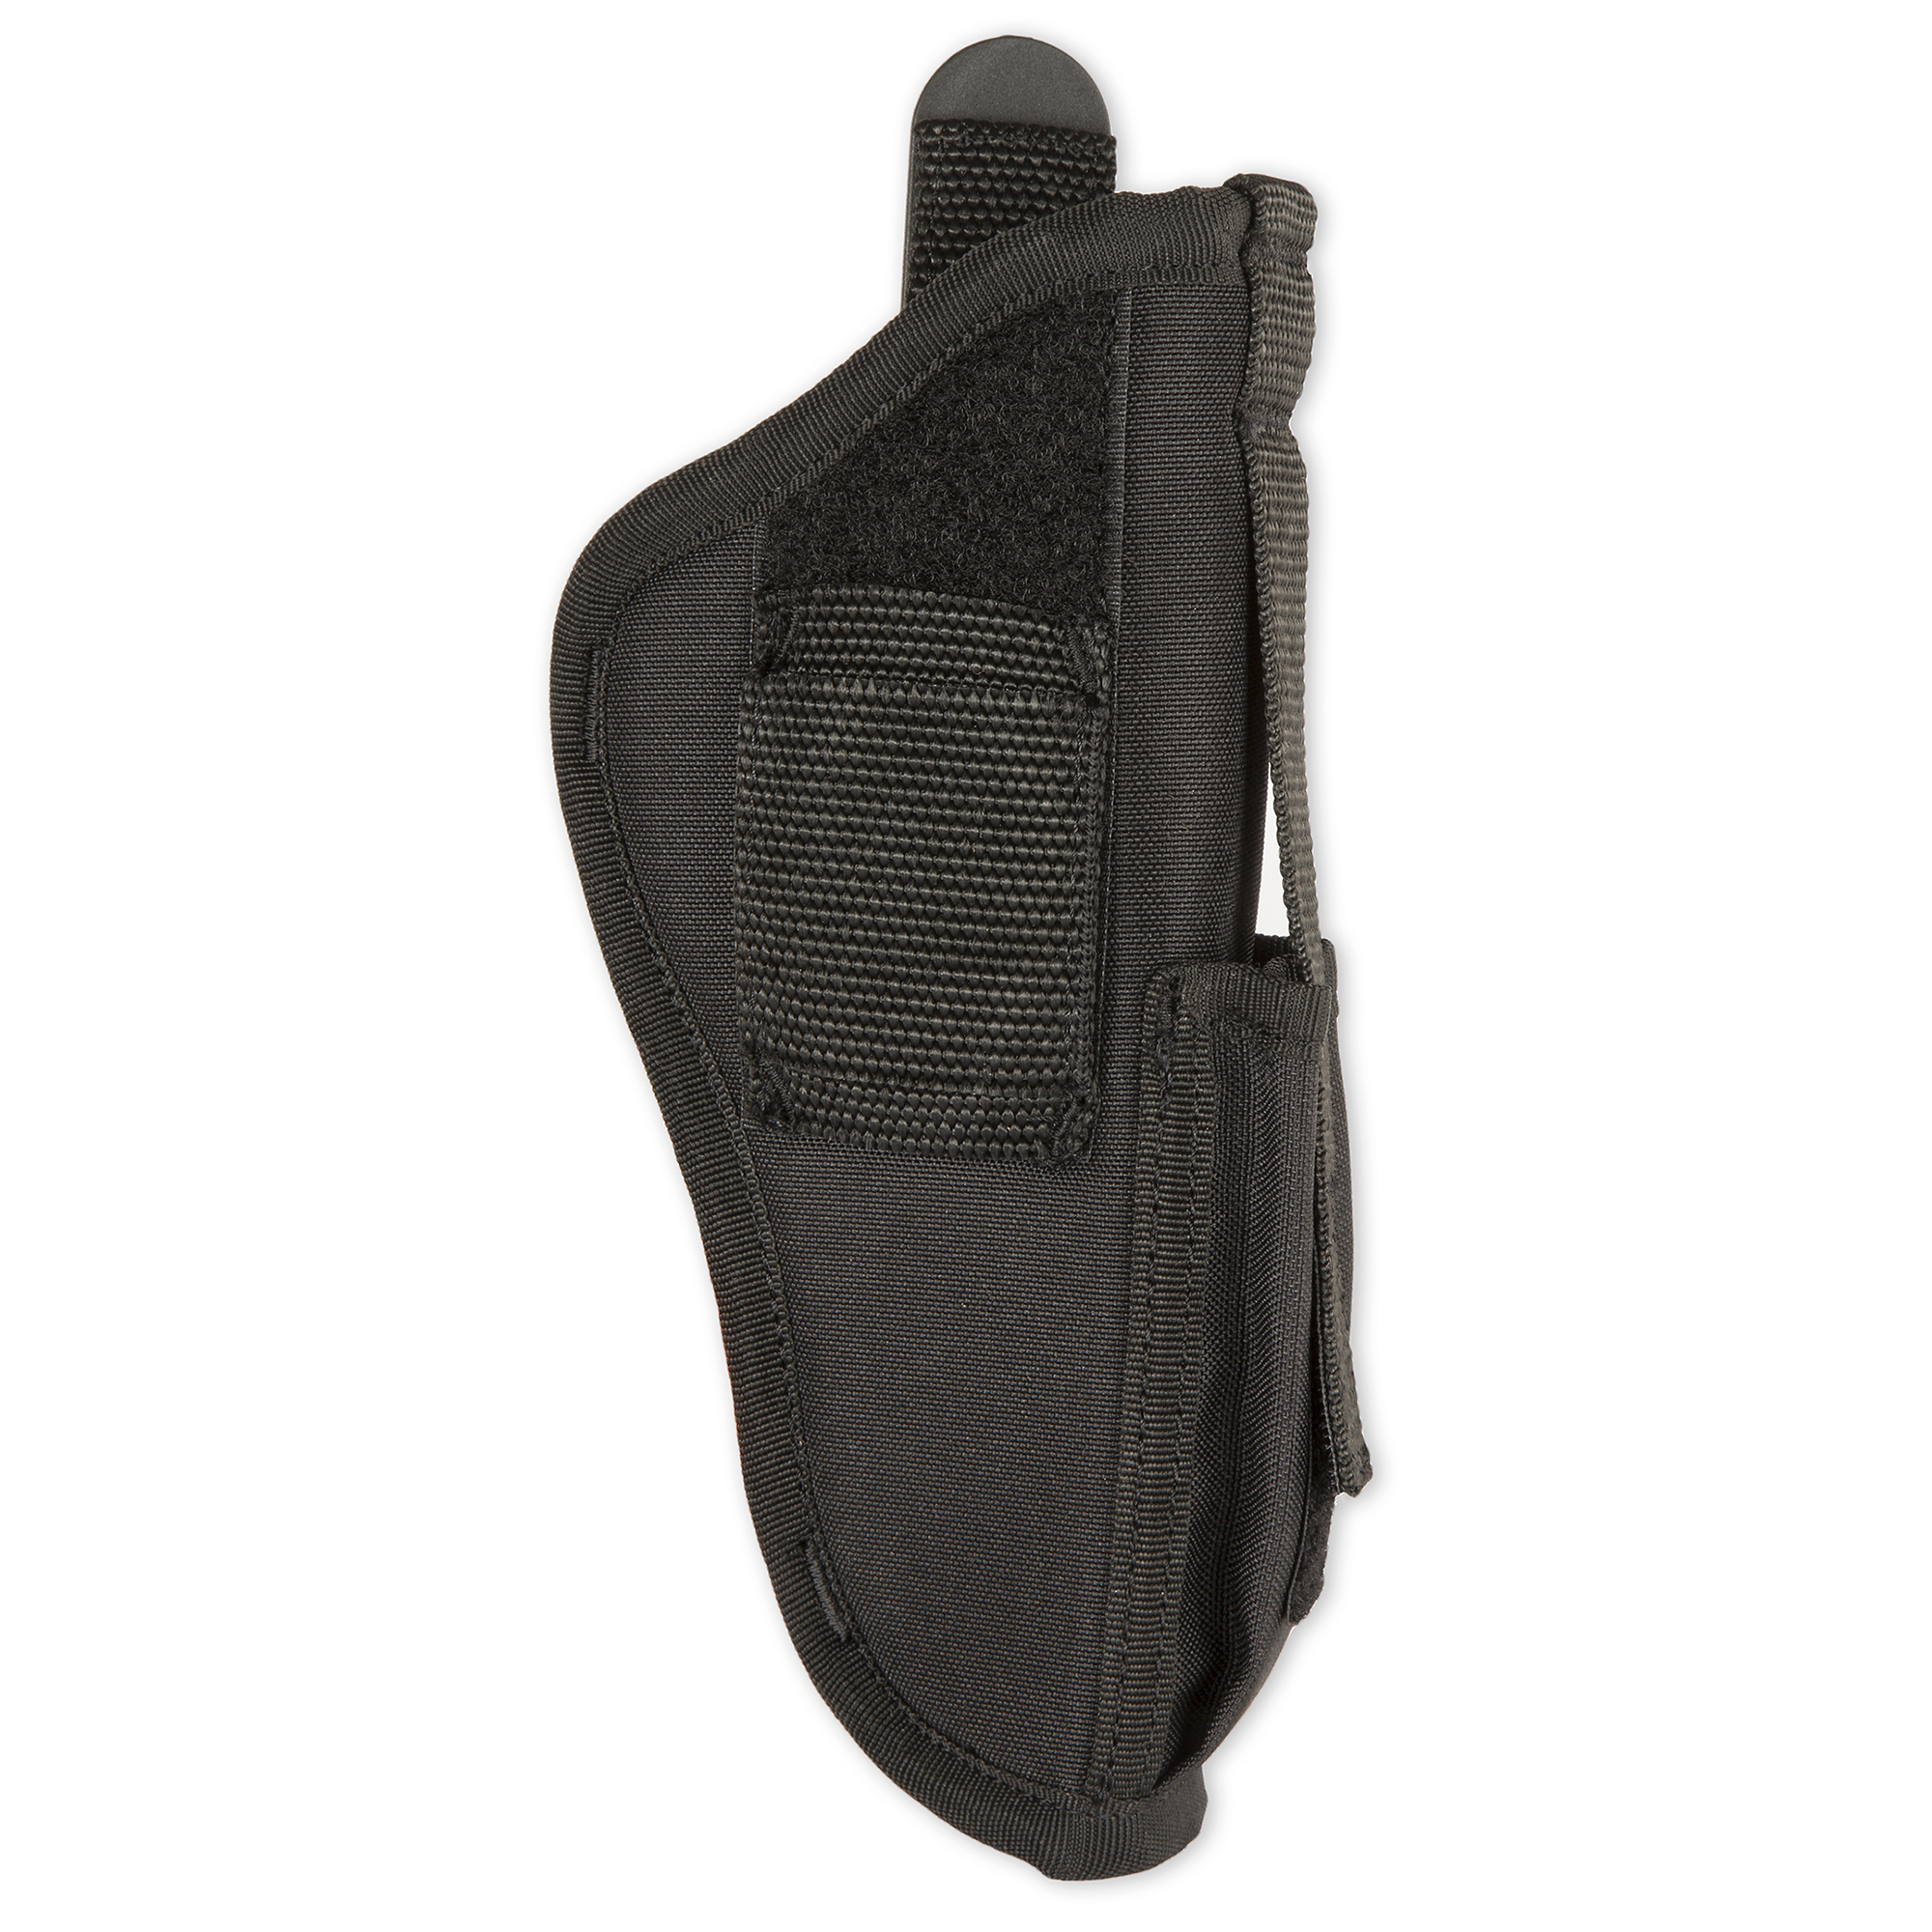 GunMate Ambidextrous Hip Holster, Size 12